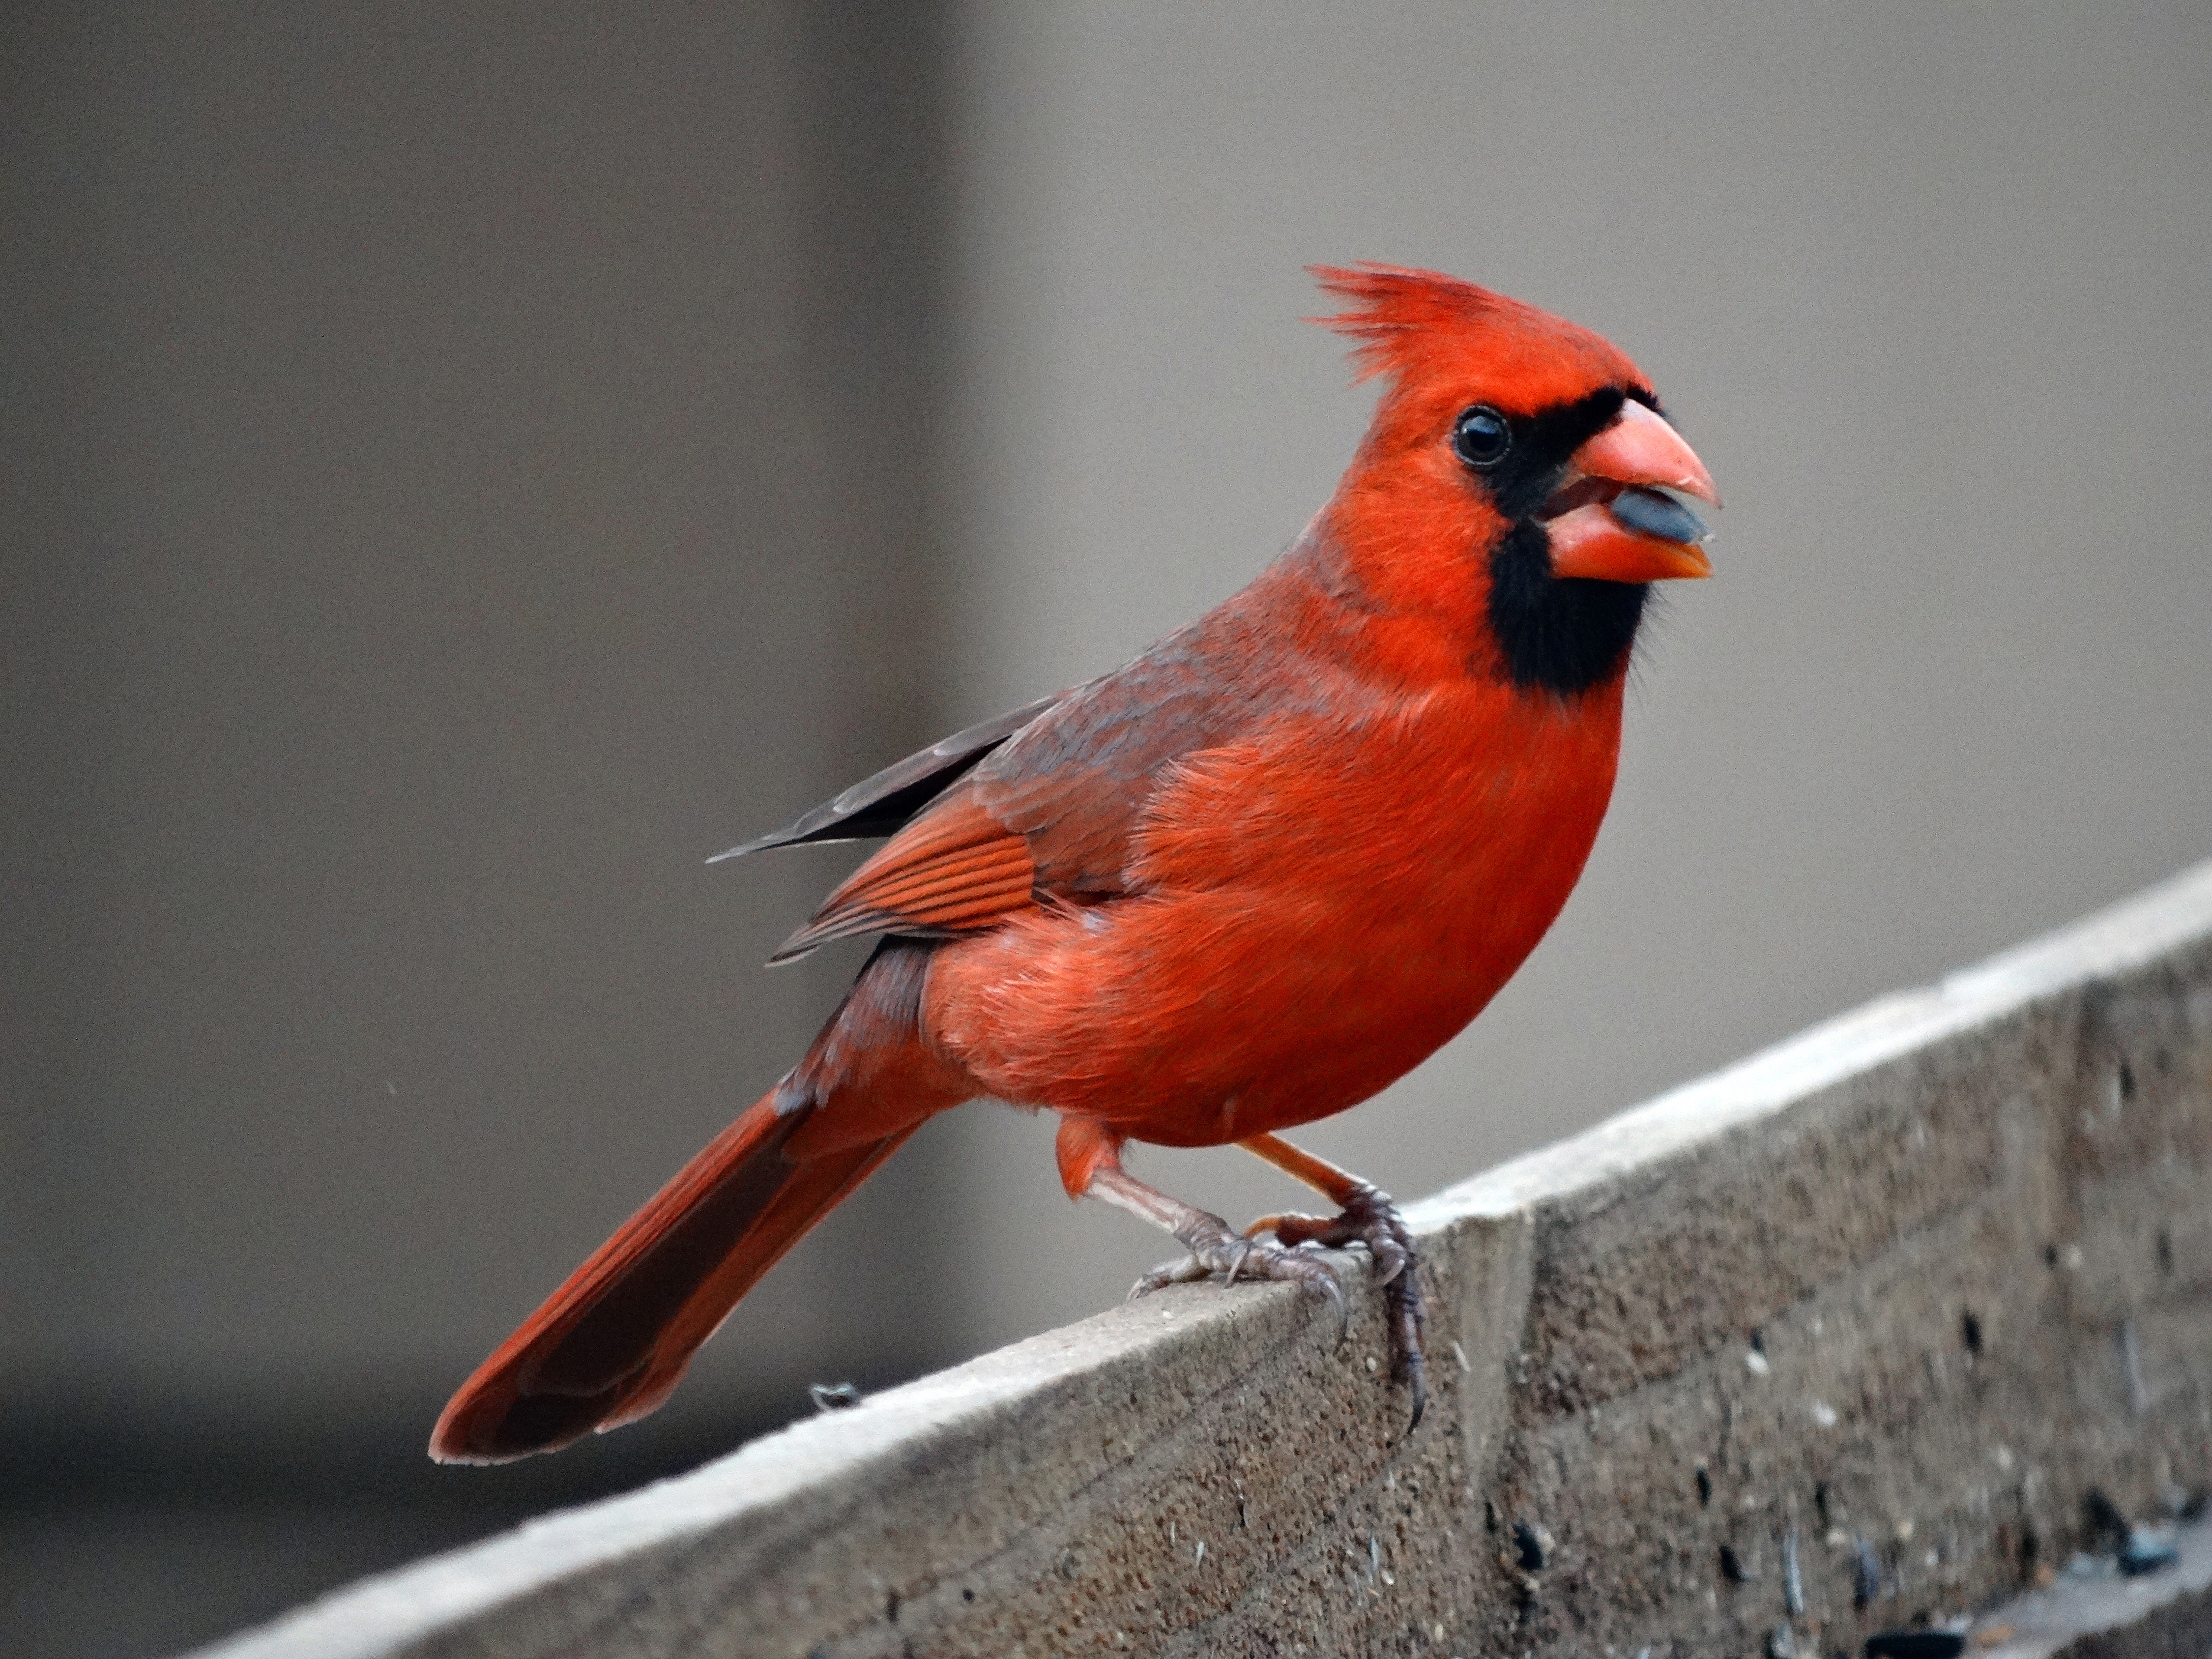 Divine Inspiration Photo #6A - Northern Cardinal Enjoying Sunflower Seed - 8 x 10